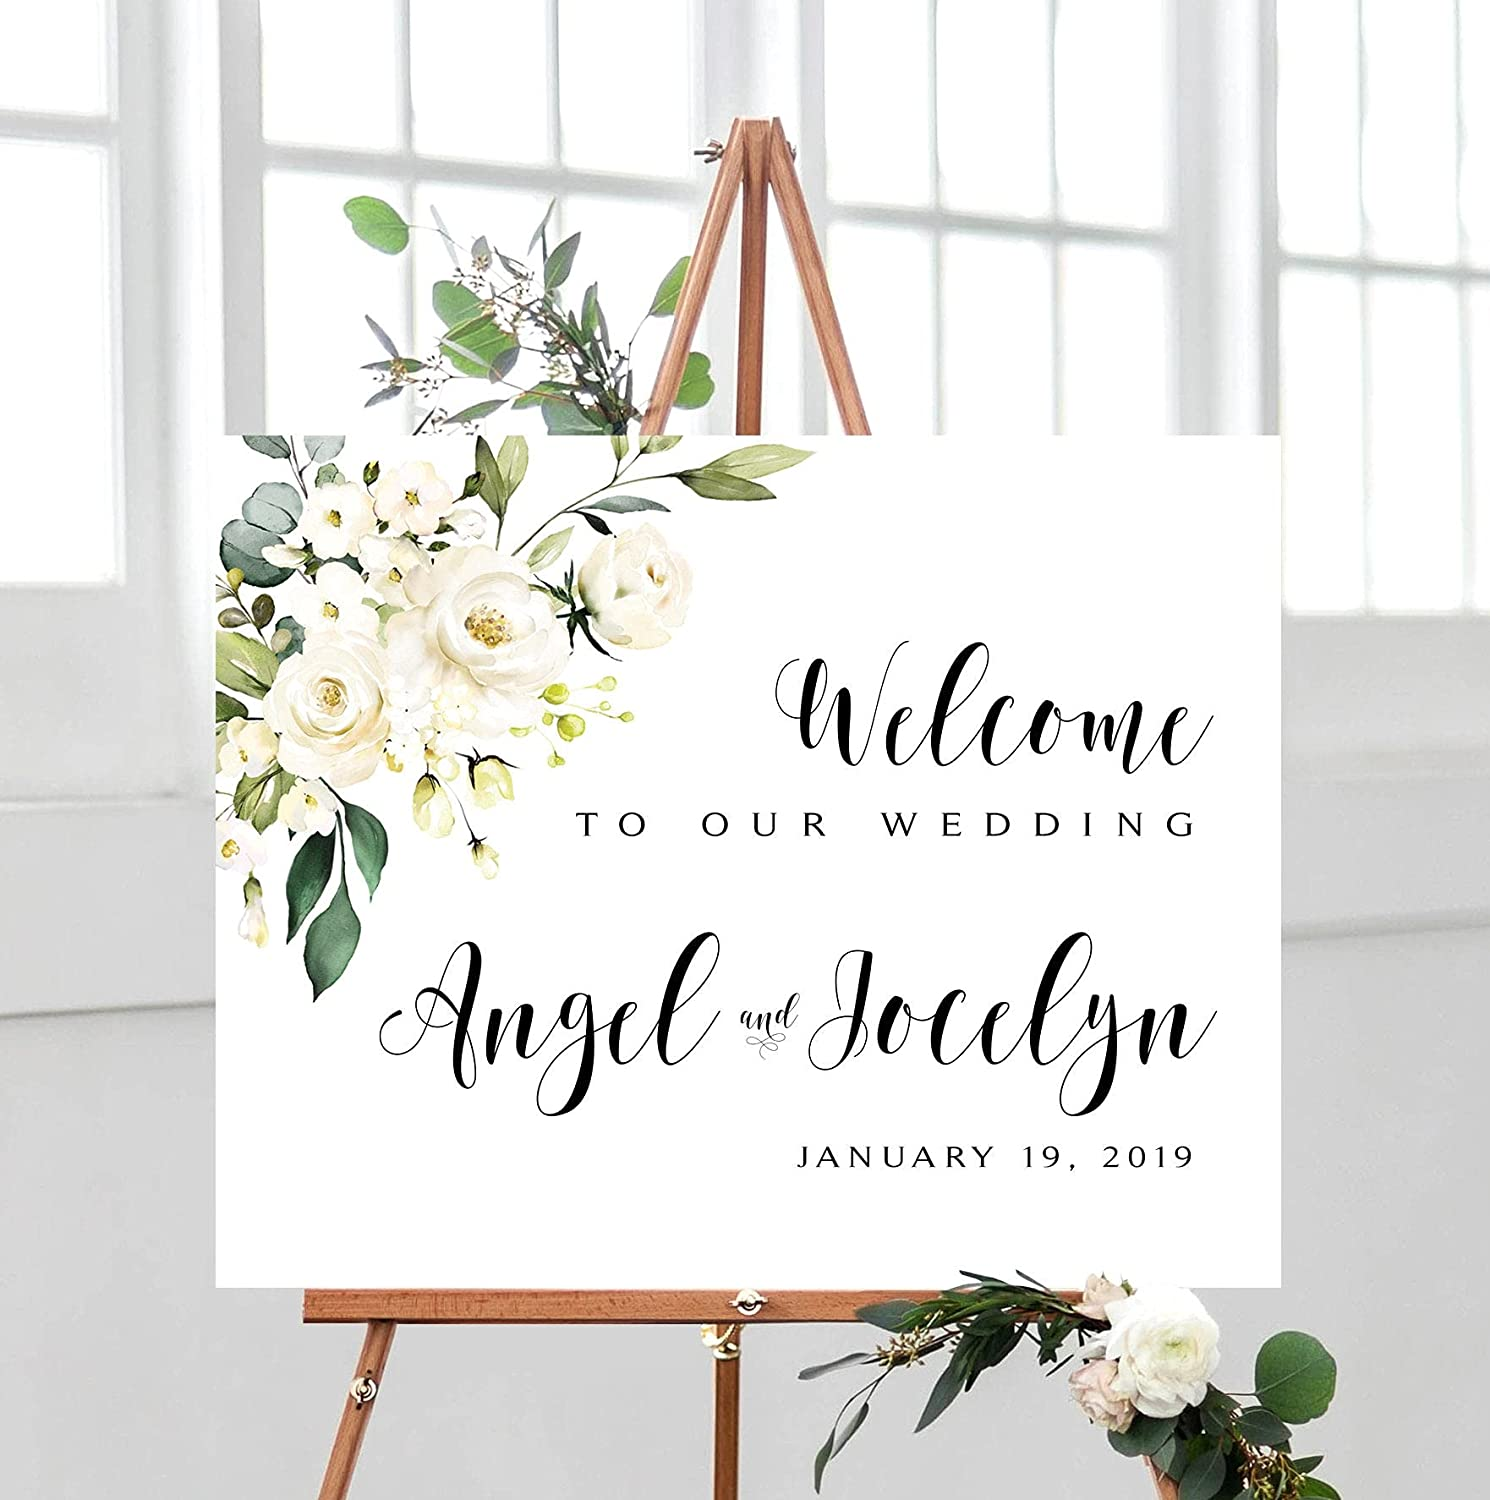 Promini Los Angeles Mall Wedding Welcome Sign Various Poster Personalized High quality new